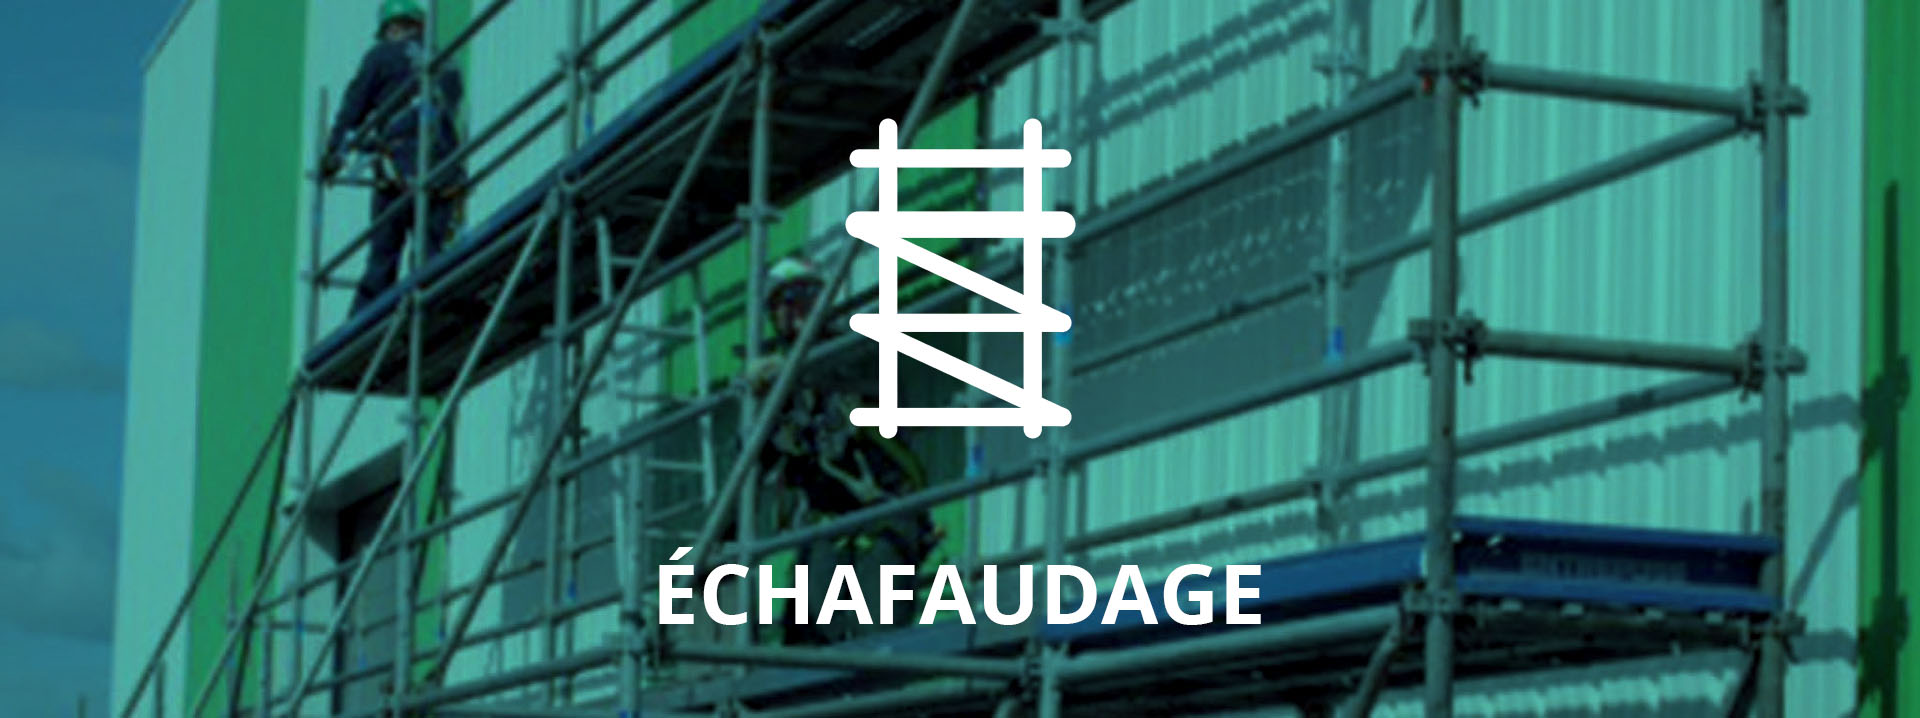 formation  u00c9chafaudages en france   obligations  prix  catalogue